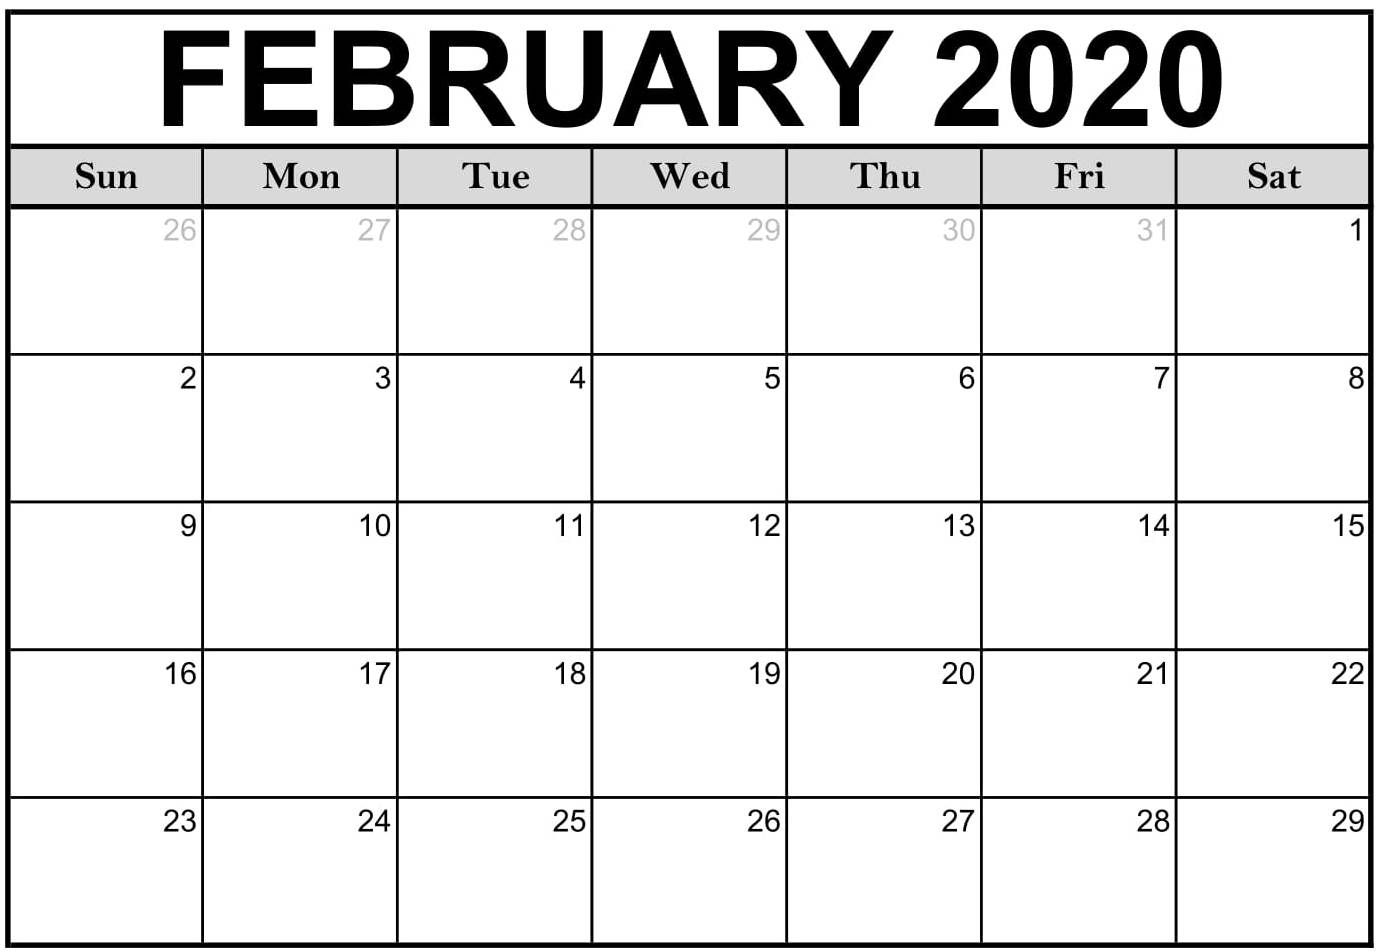 Free Printable February Calendar 2020 Pdf Sheet - Set Your